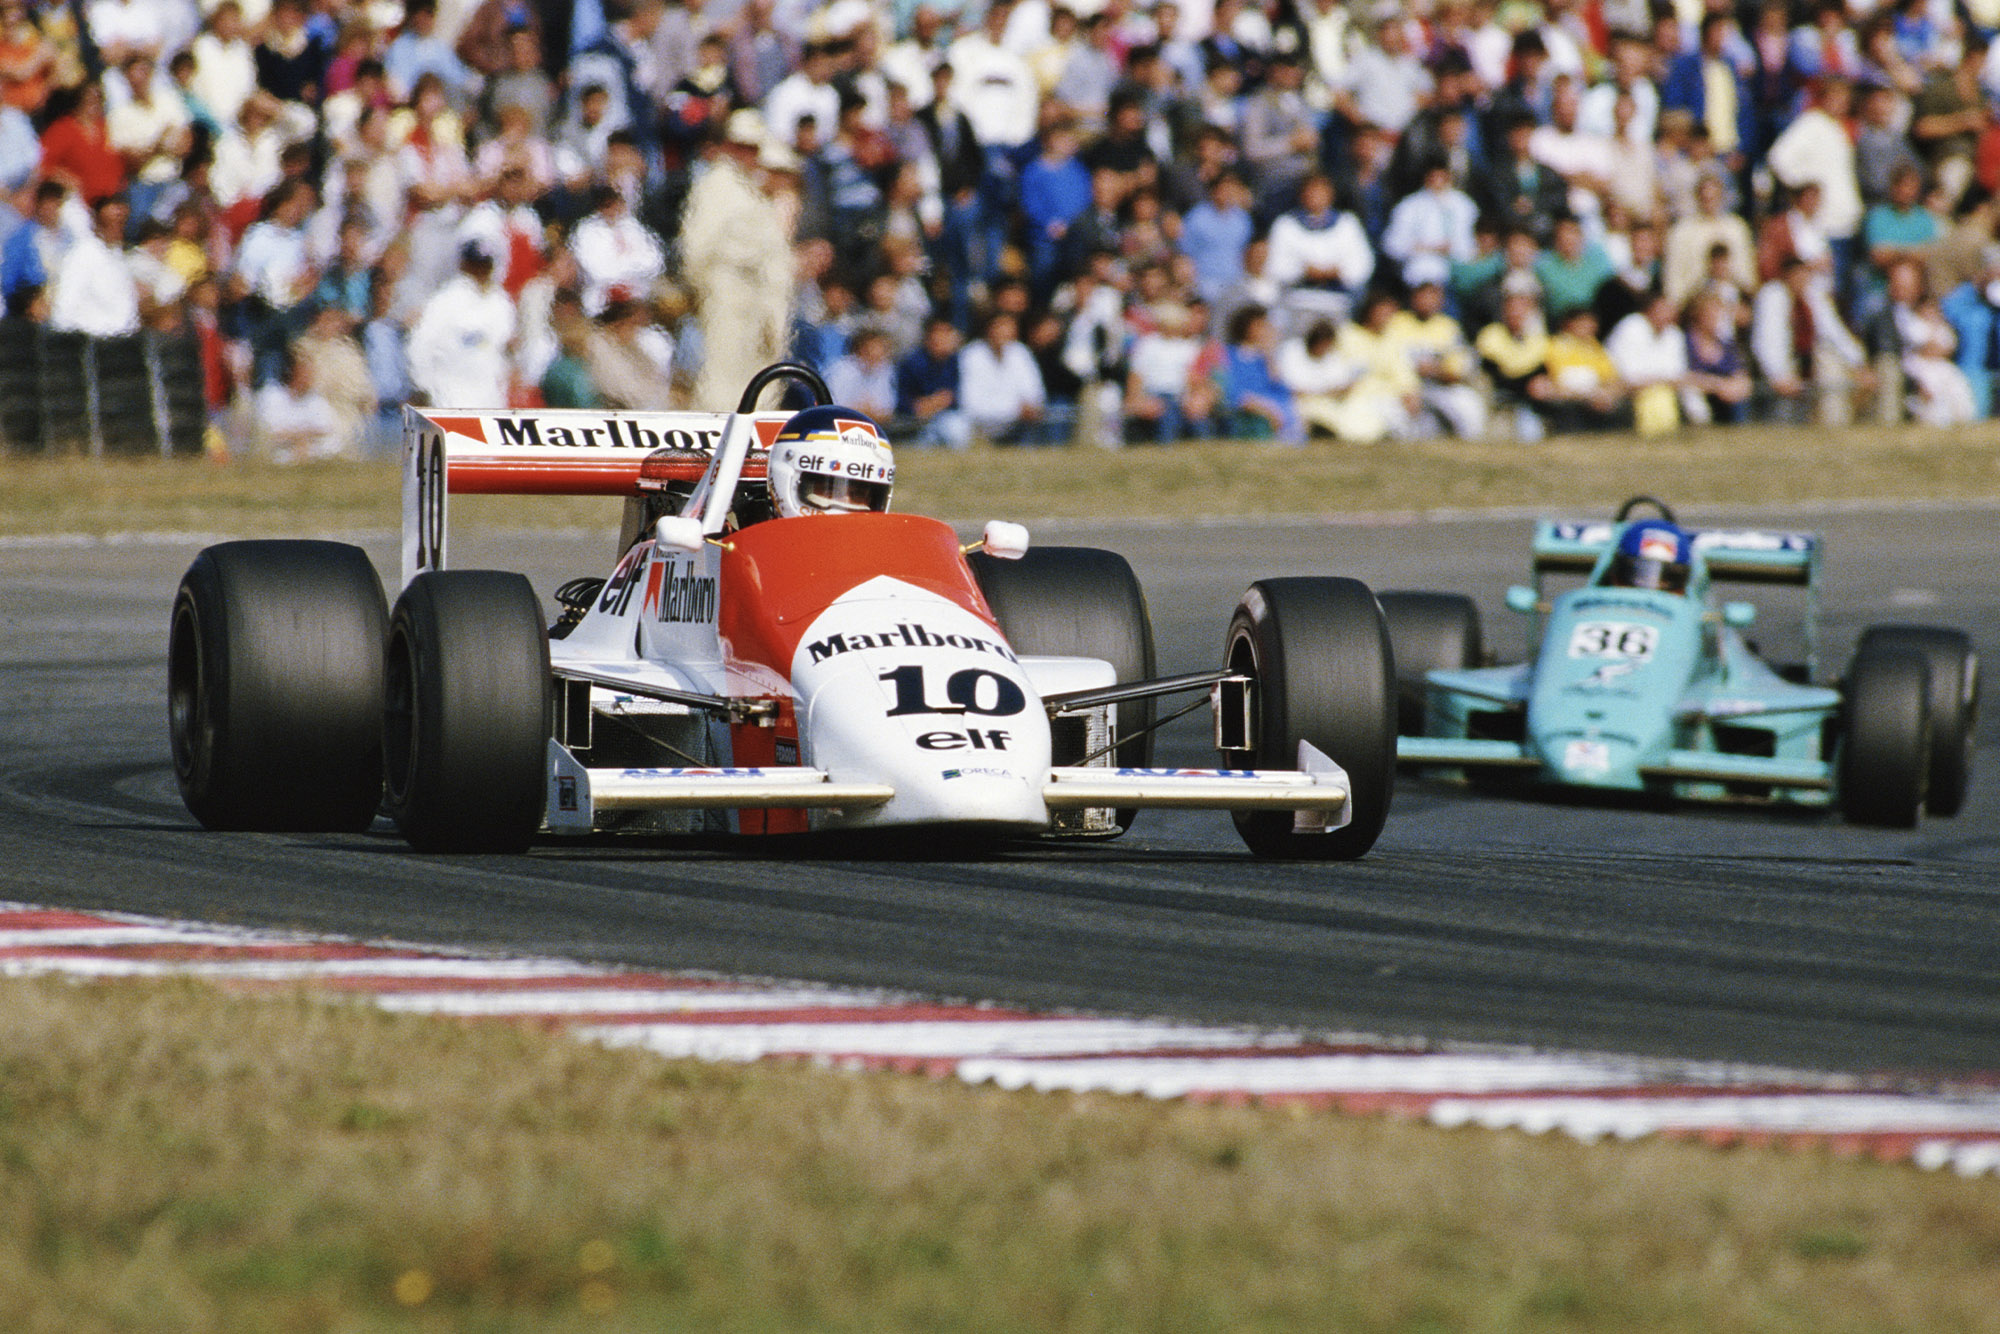 Michel Ferte racing at Le Mans in the 1986 F3000 championship